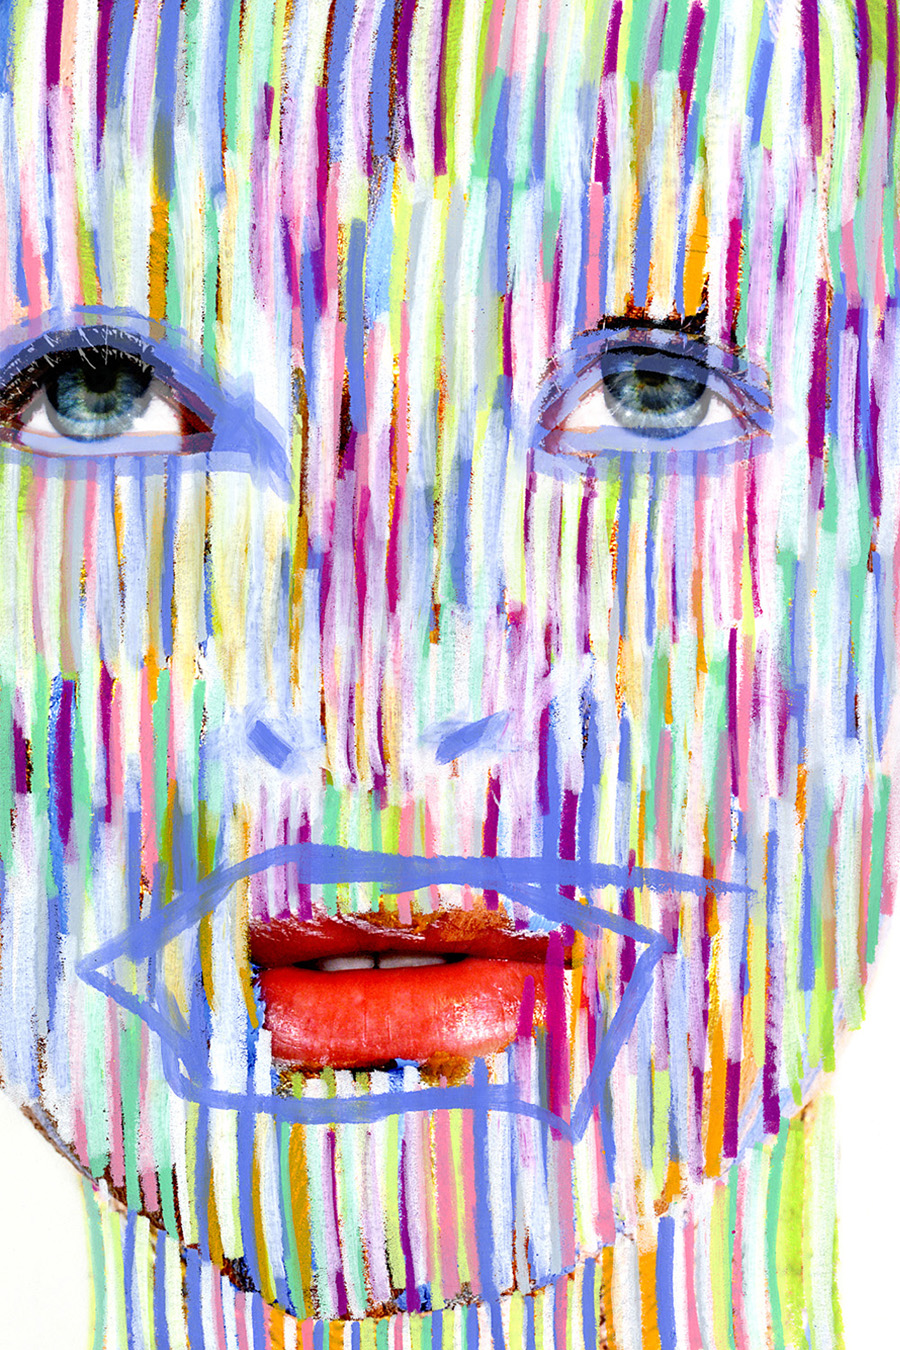 Austyn-Weiner-artist-nyc-portrait-mixed-media-colors.jpg